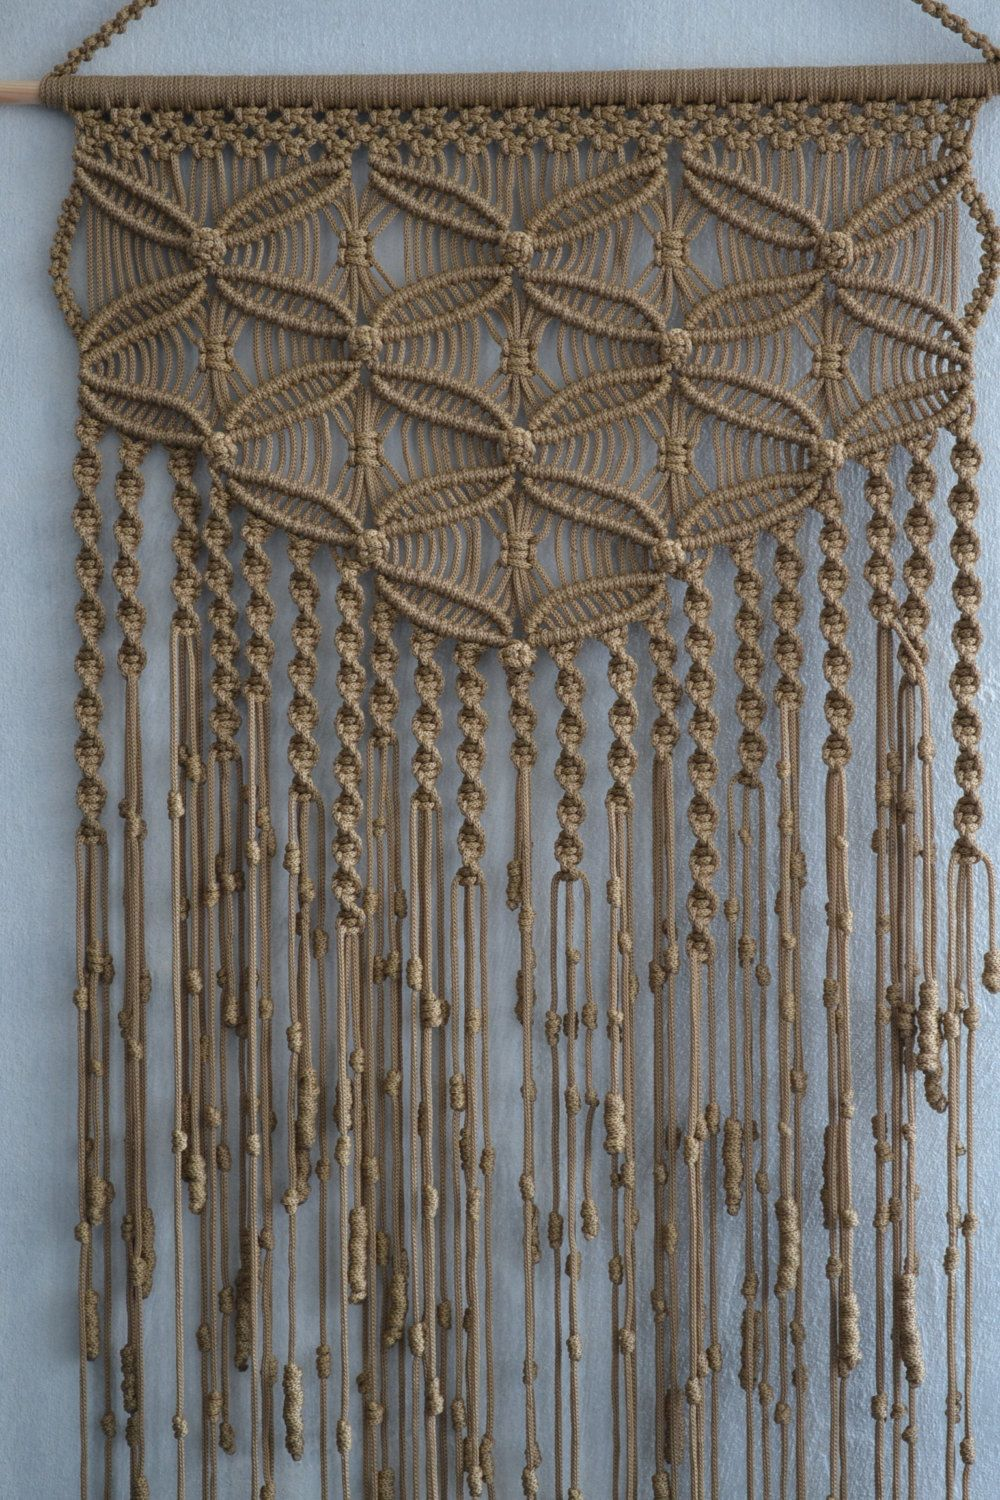 Macrame wall hanging by mrcolmar on etsy macrame for Wall hangings